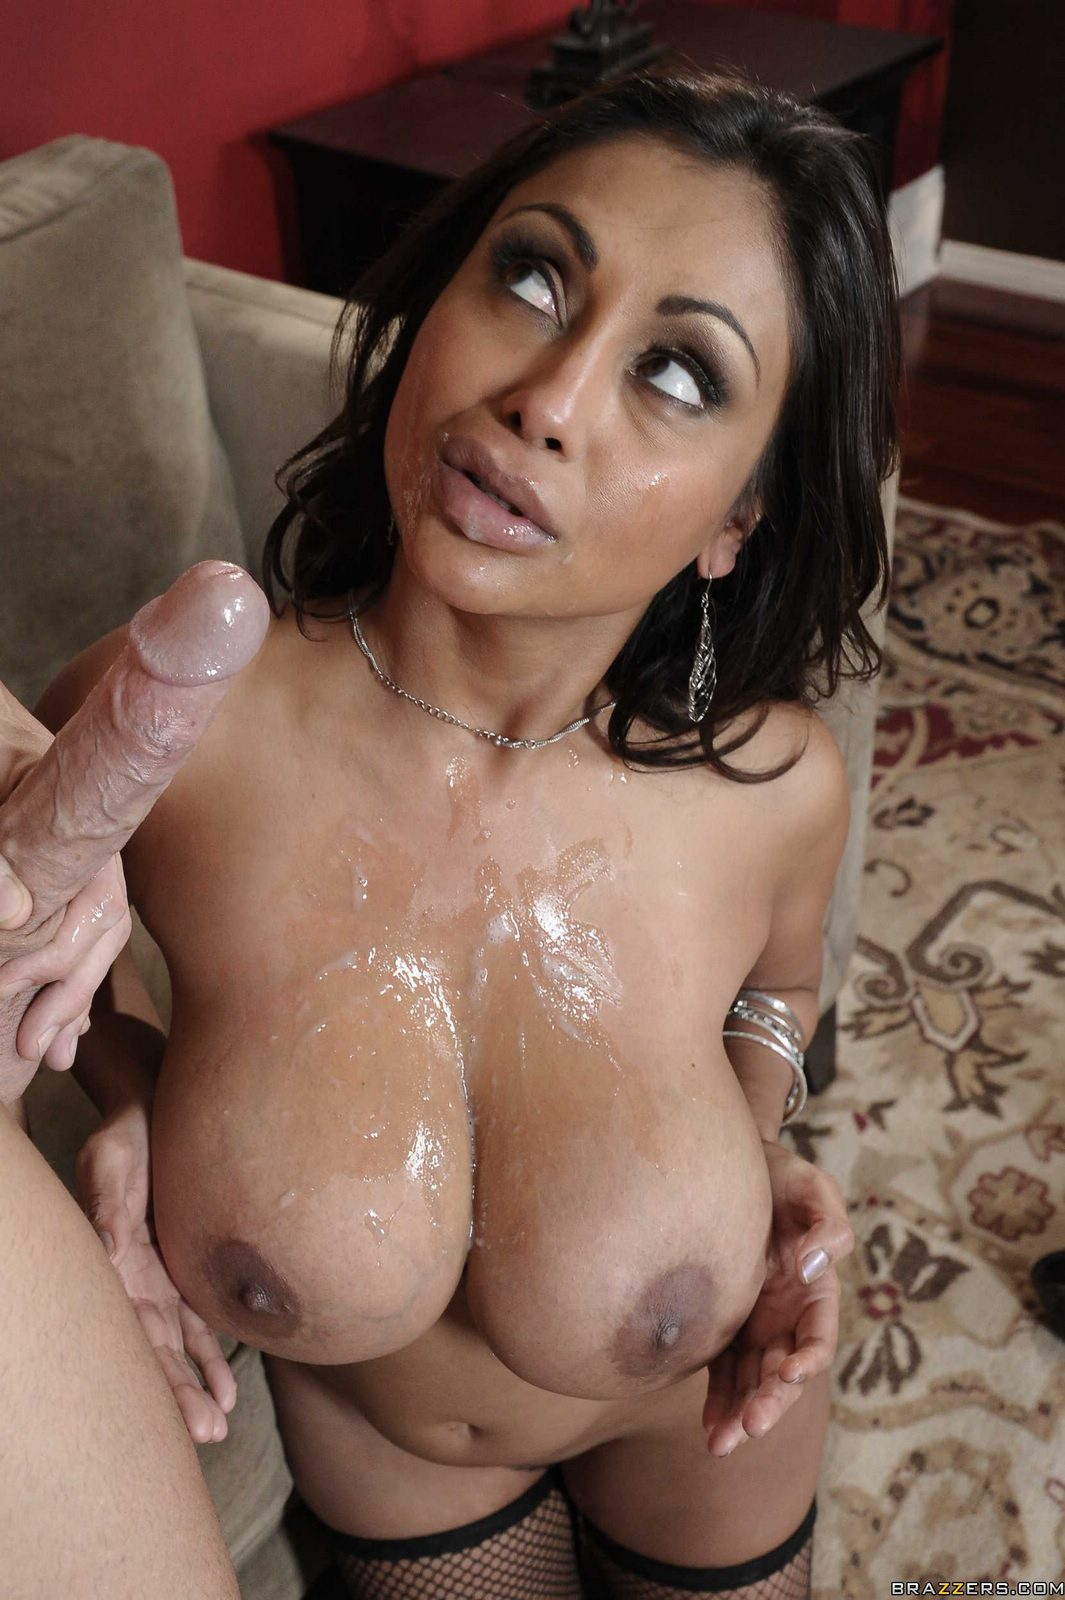 1126 creamy cum to many squirts beautiful cunt - 1 5